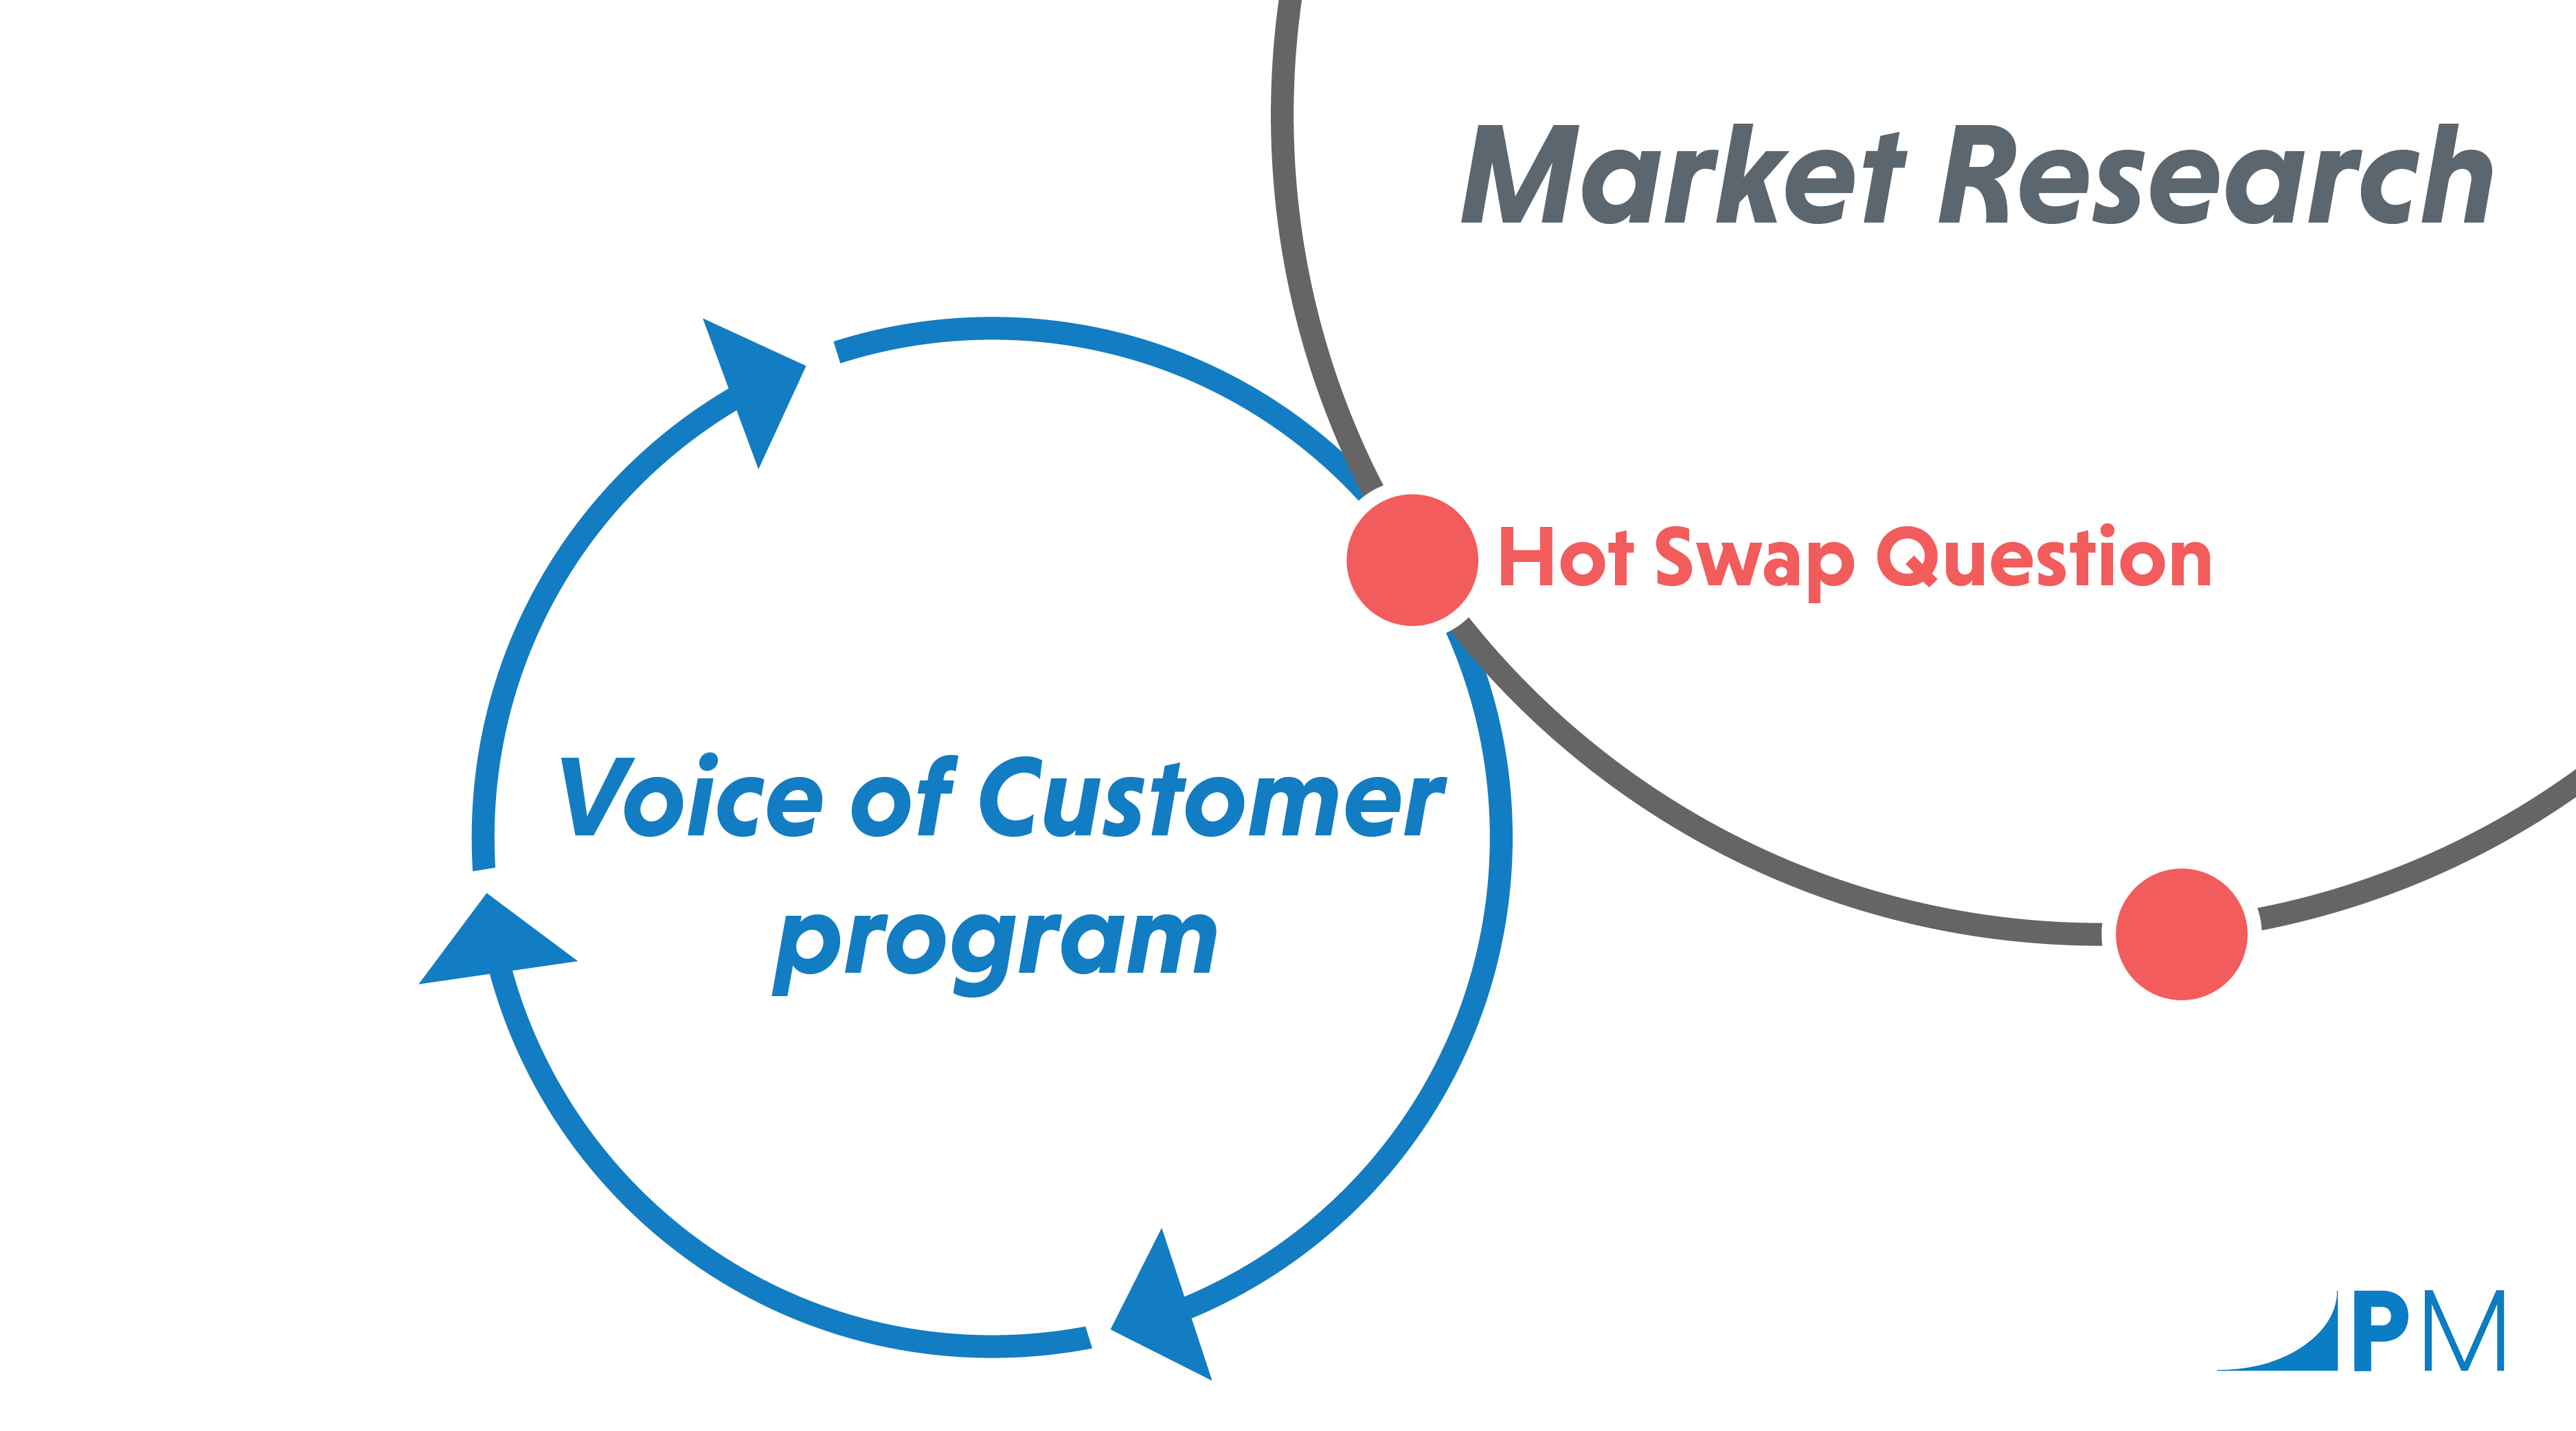 The PeopleMetrics Hot Swap model